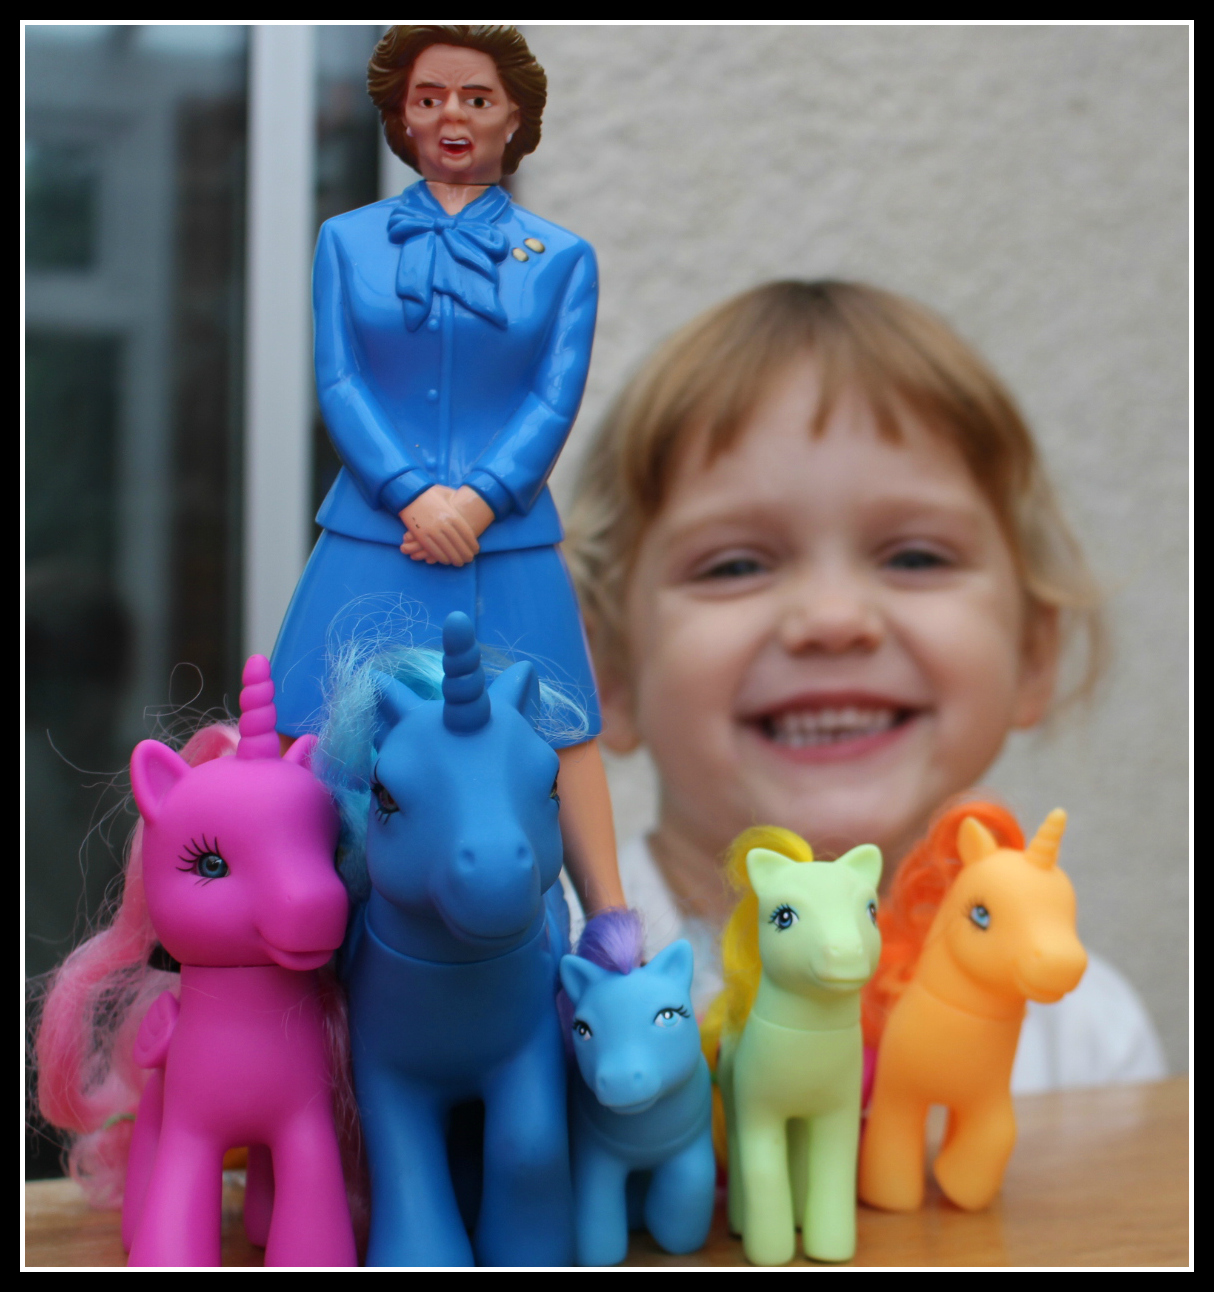 Margaret Thatcher goes riding on a unicorn